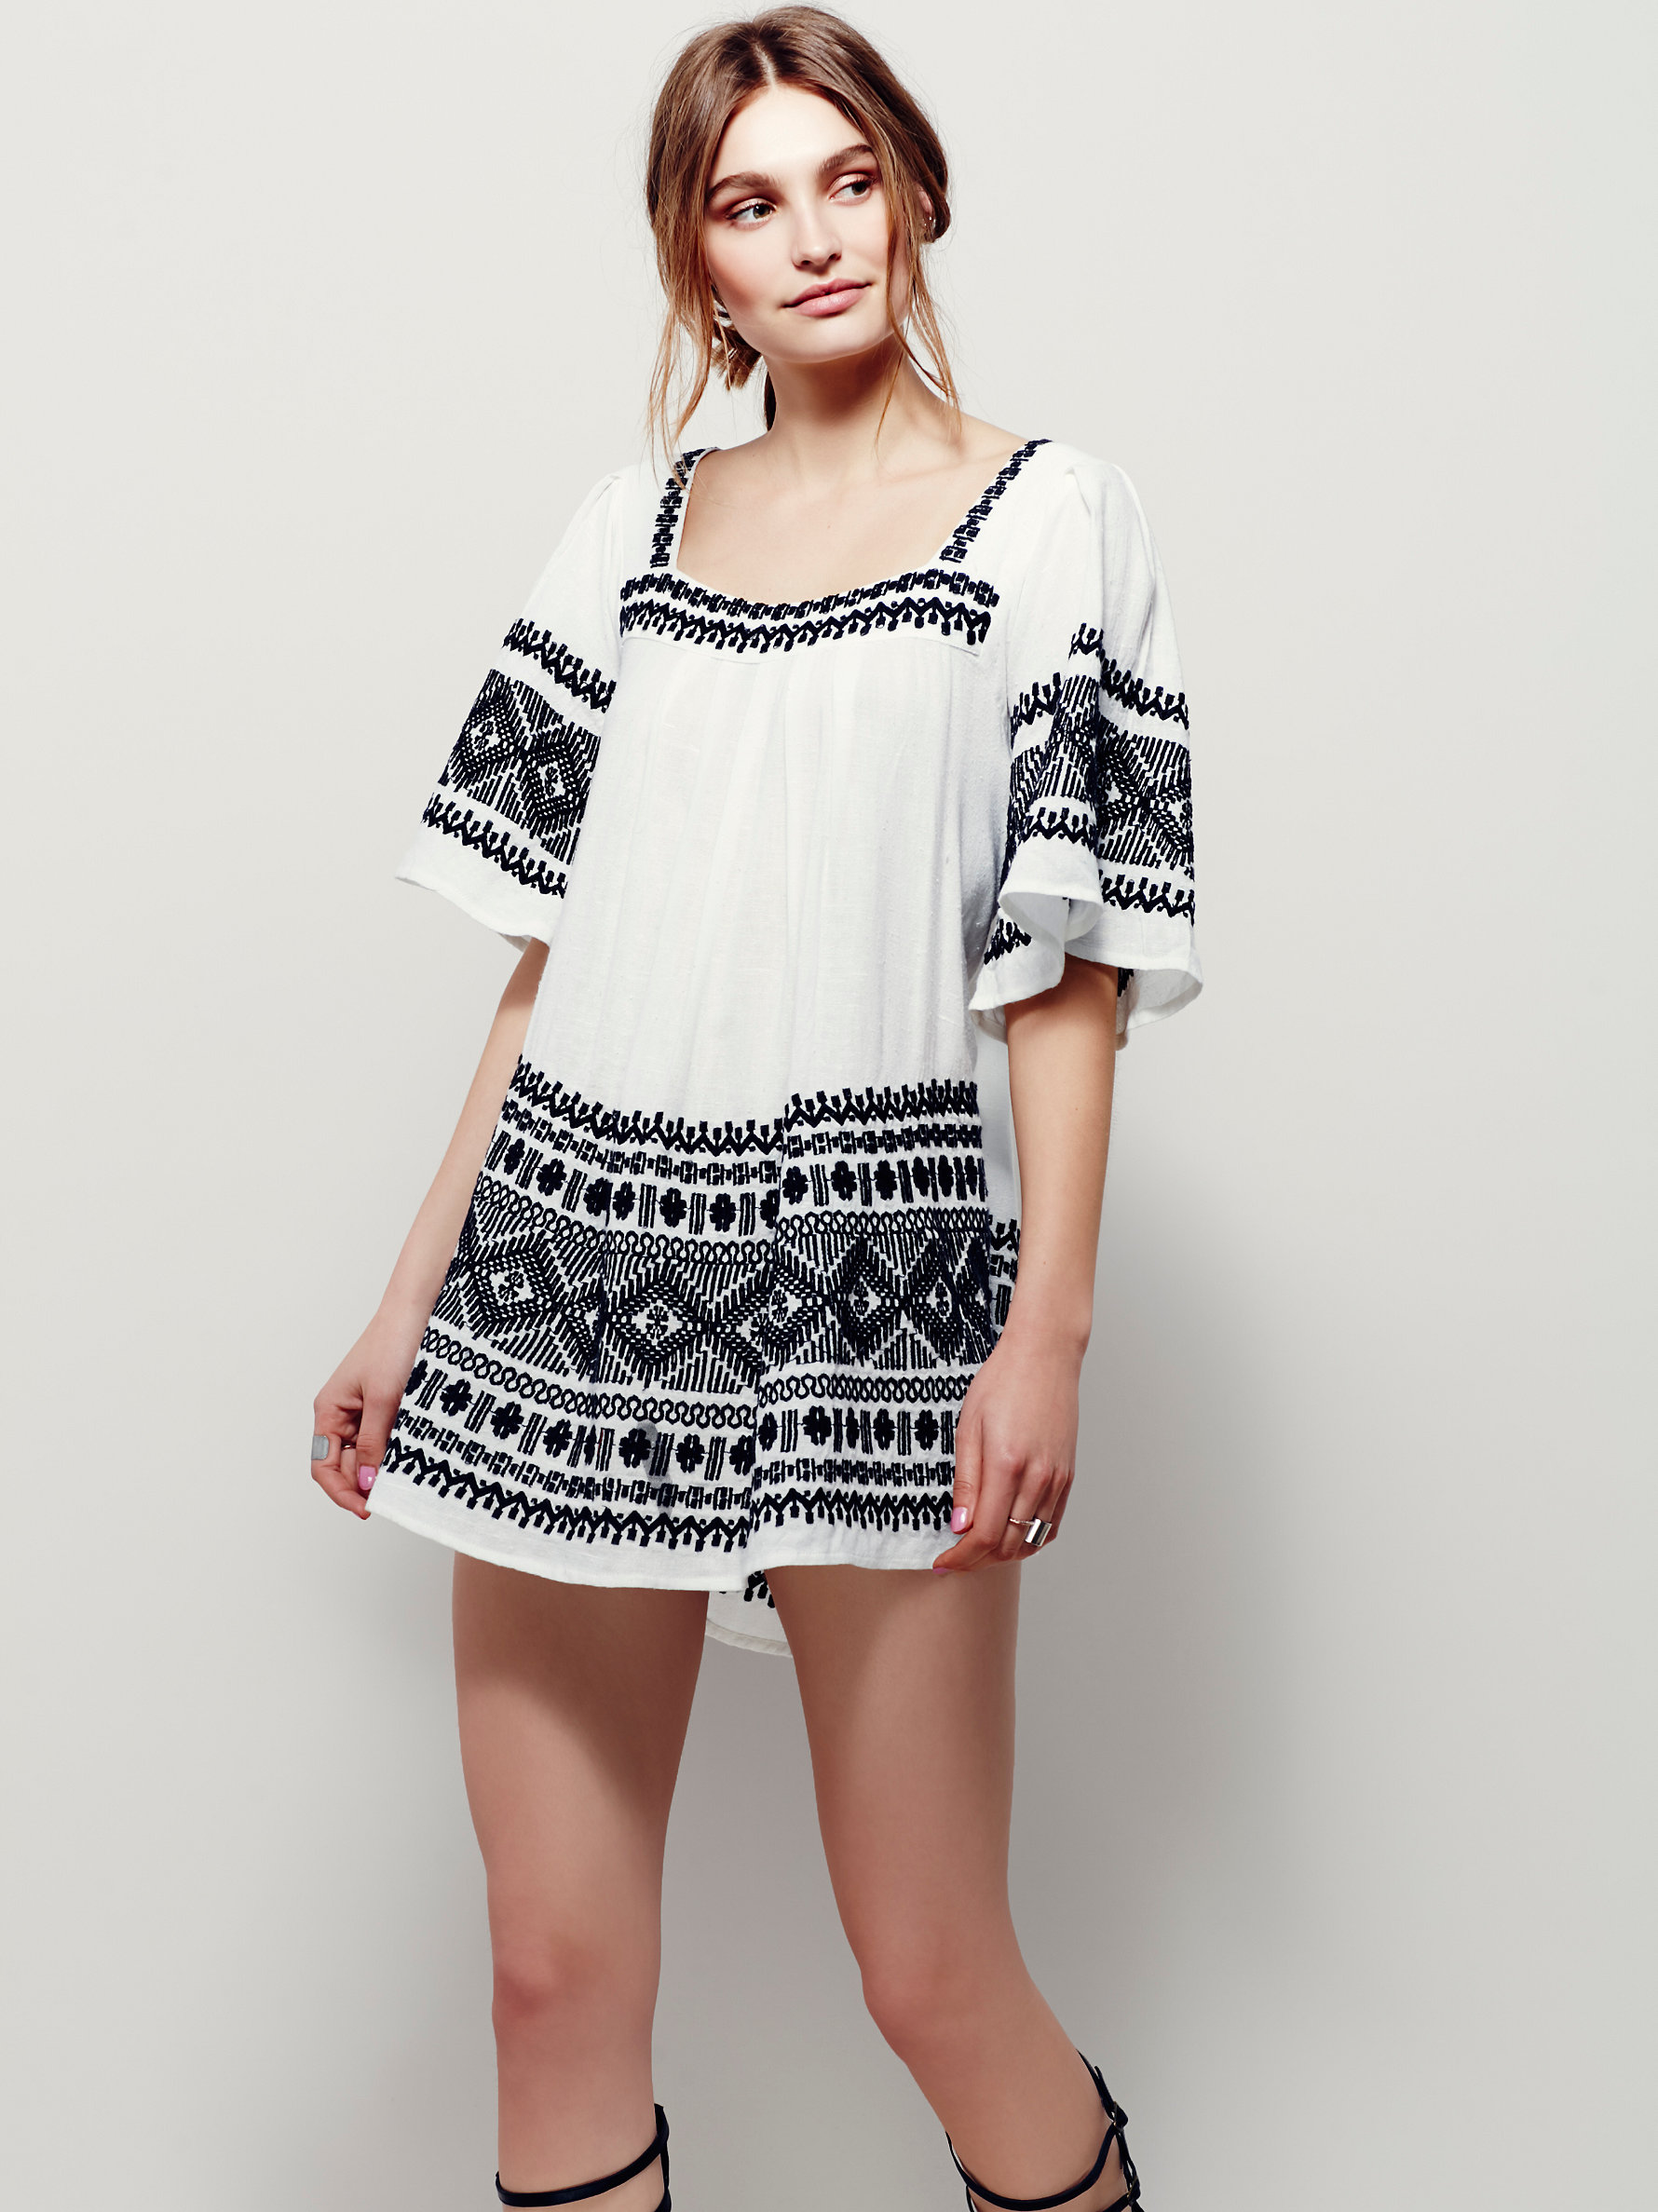 10 Perfect White Vacation Dresses - Free People Yuma Dress